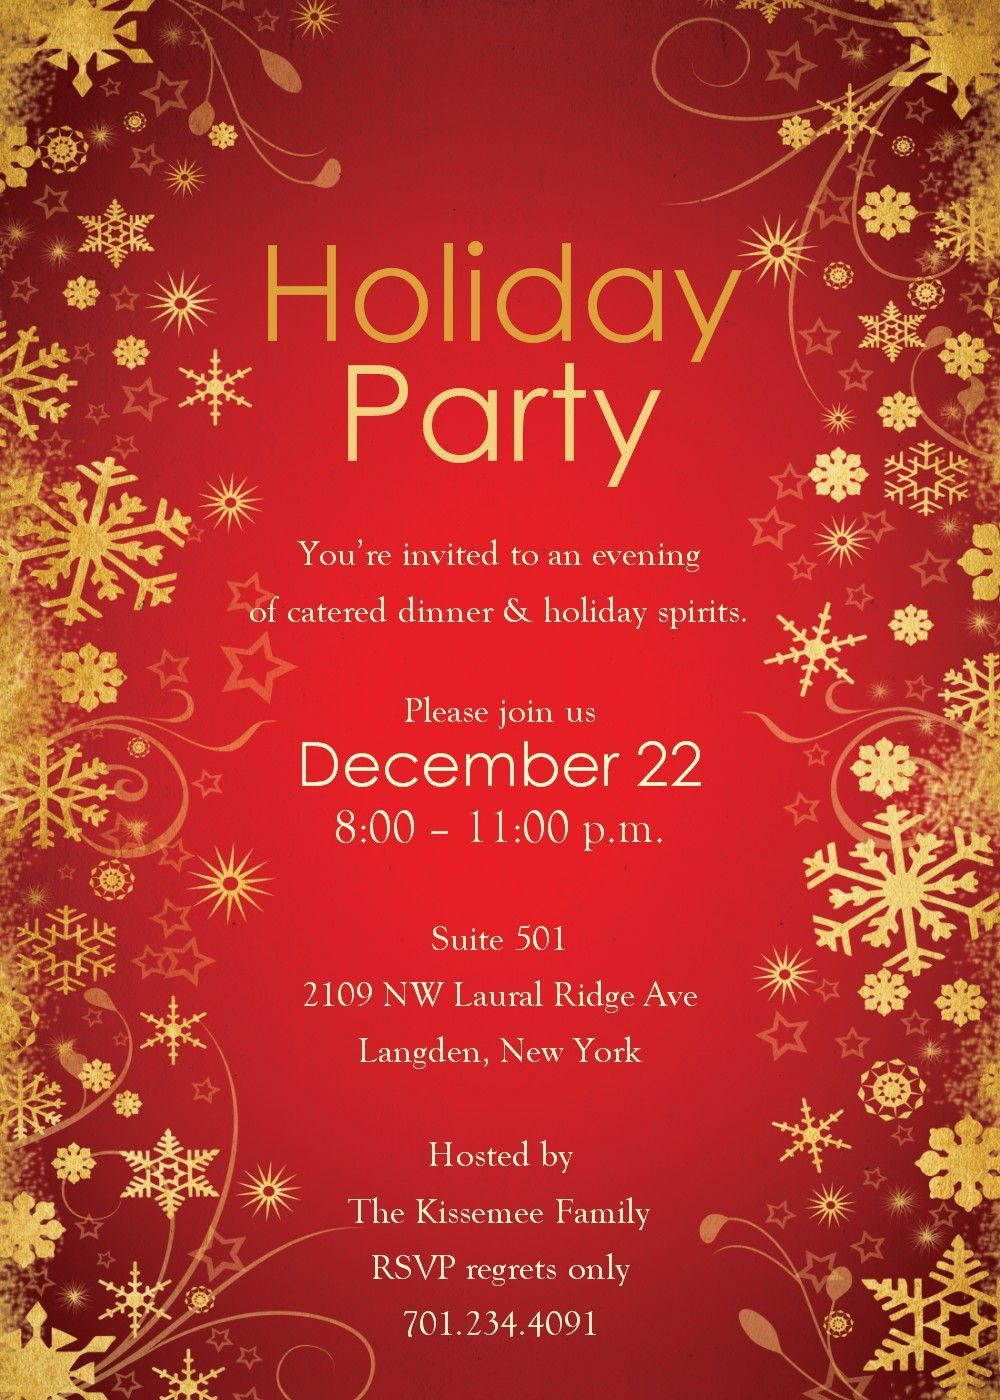 005 Breathtaking Christma Party Invite Template Concept  Microsoft Word Free Download Holiday Invitation PowerpointFull